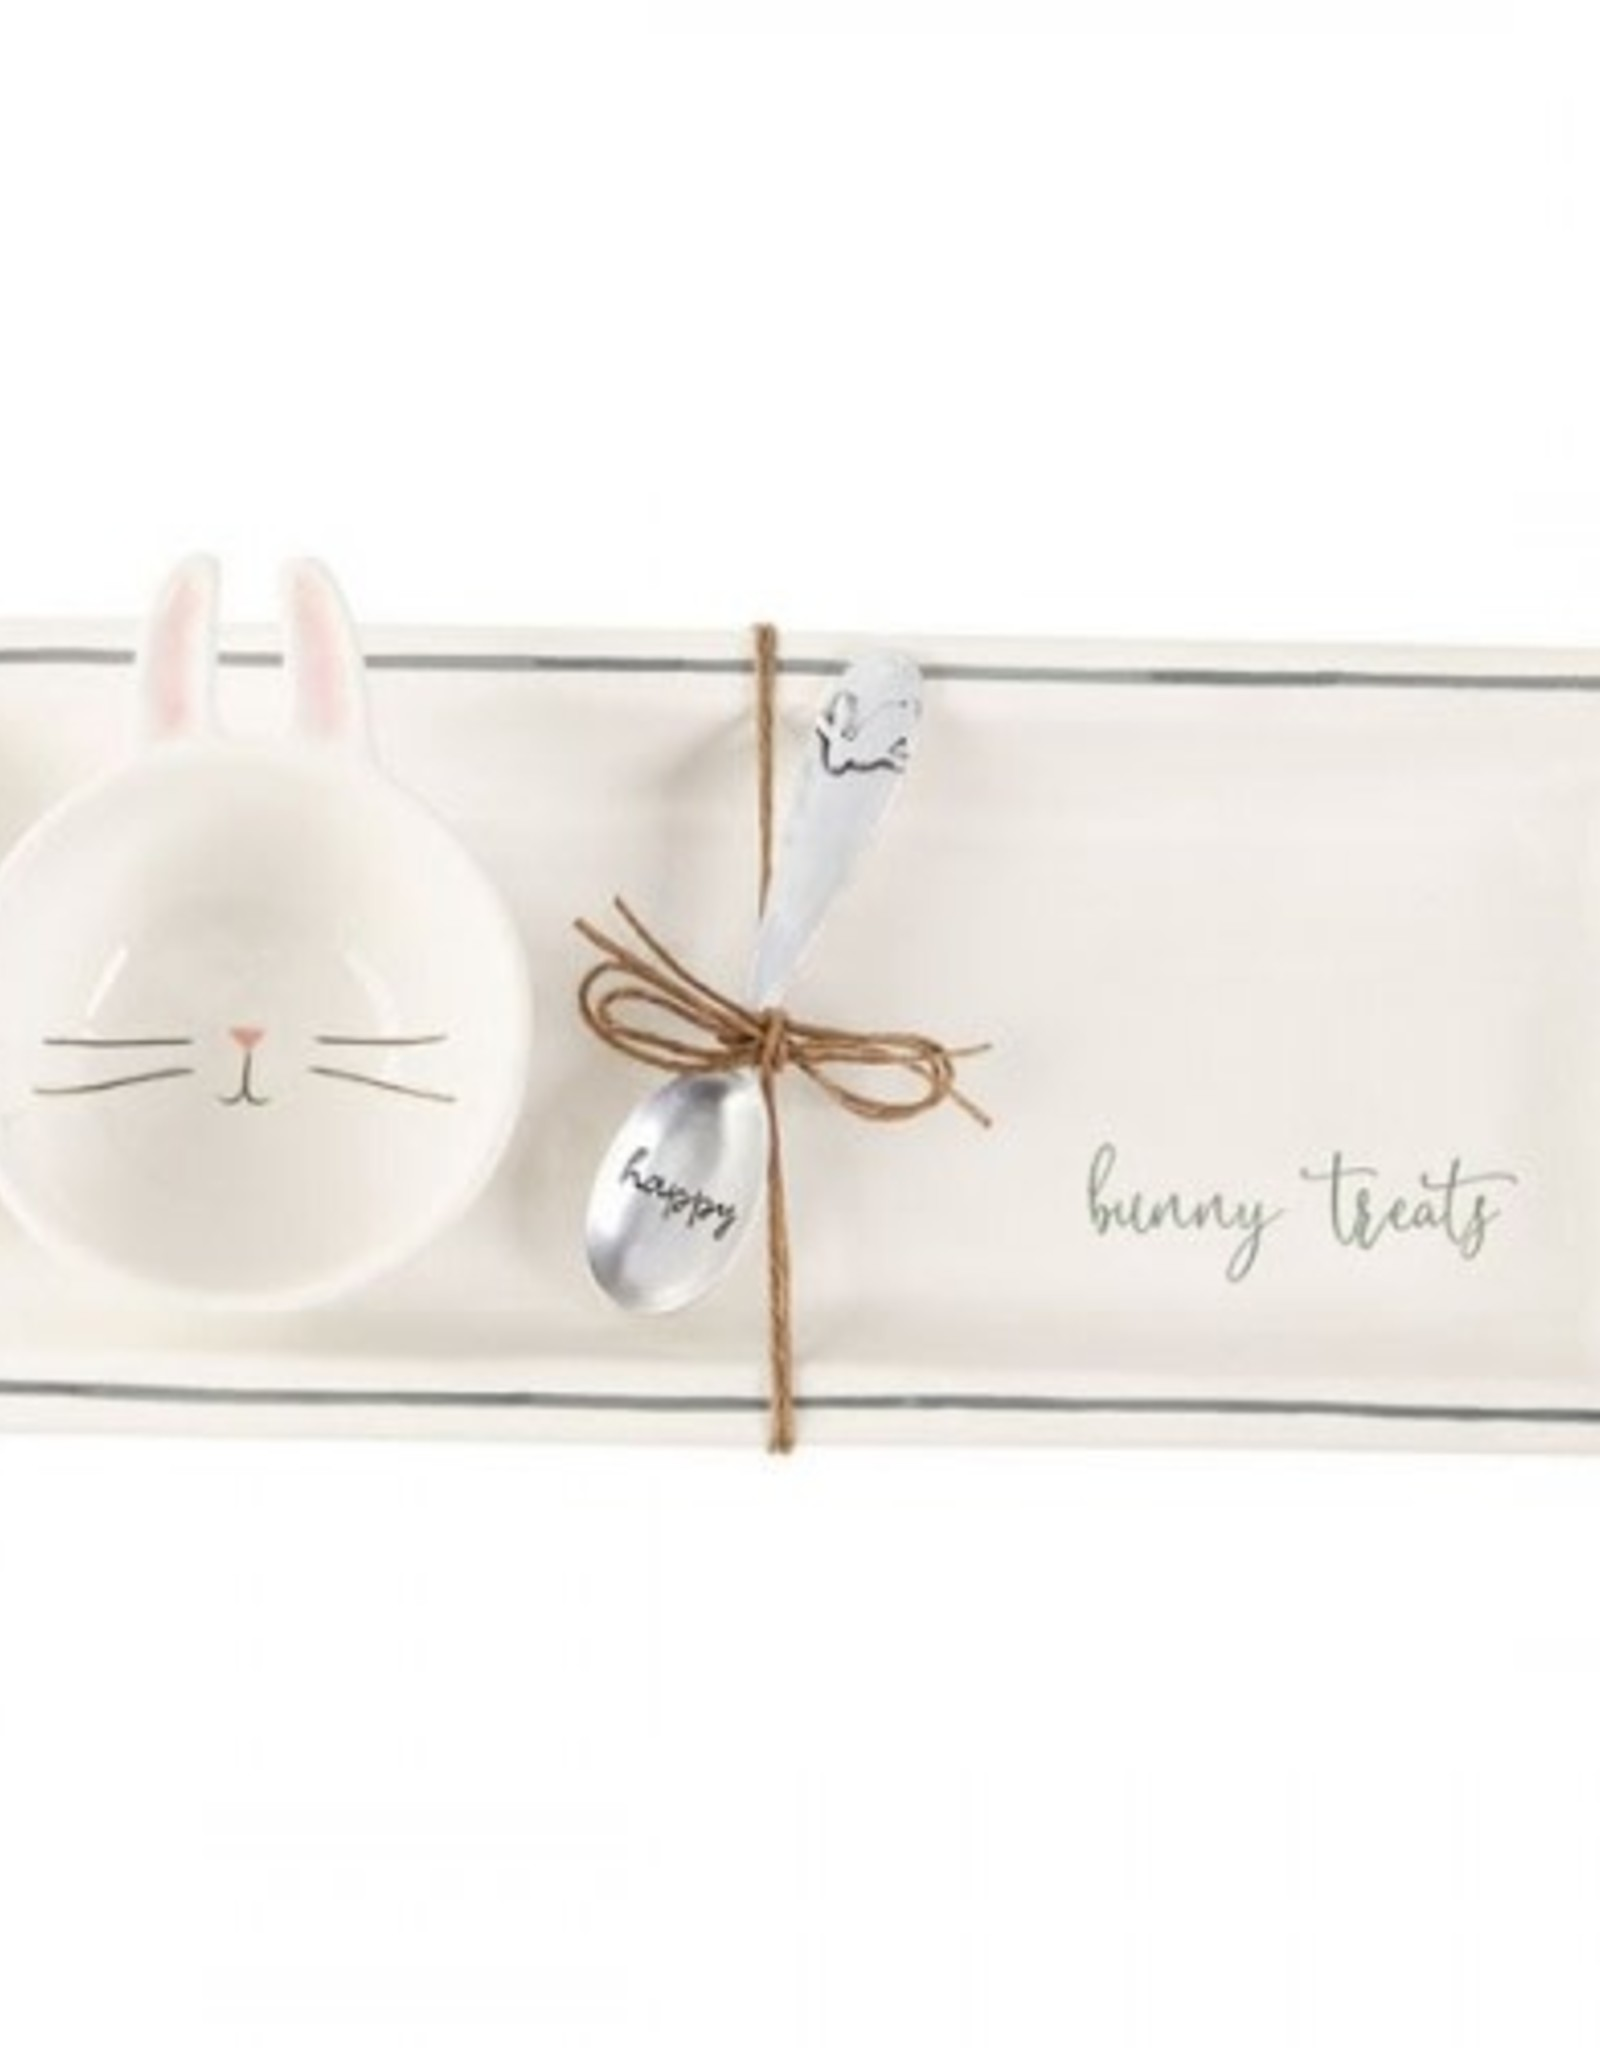 Bunny Cup with Tray Set